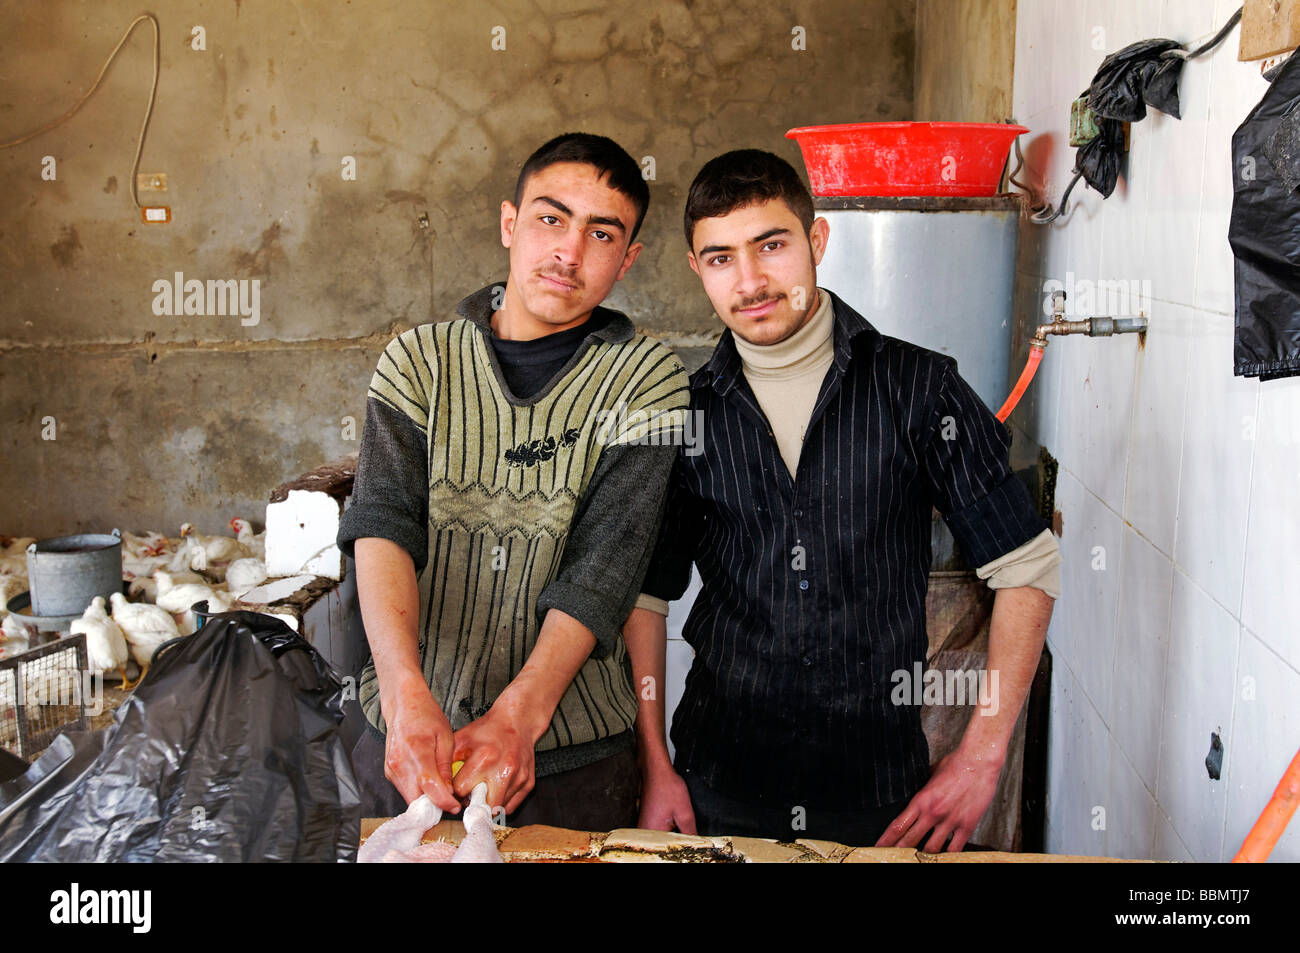 Poultry traders in Aleppo, Syria, Asia Stock Photo